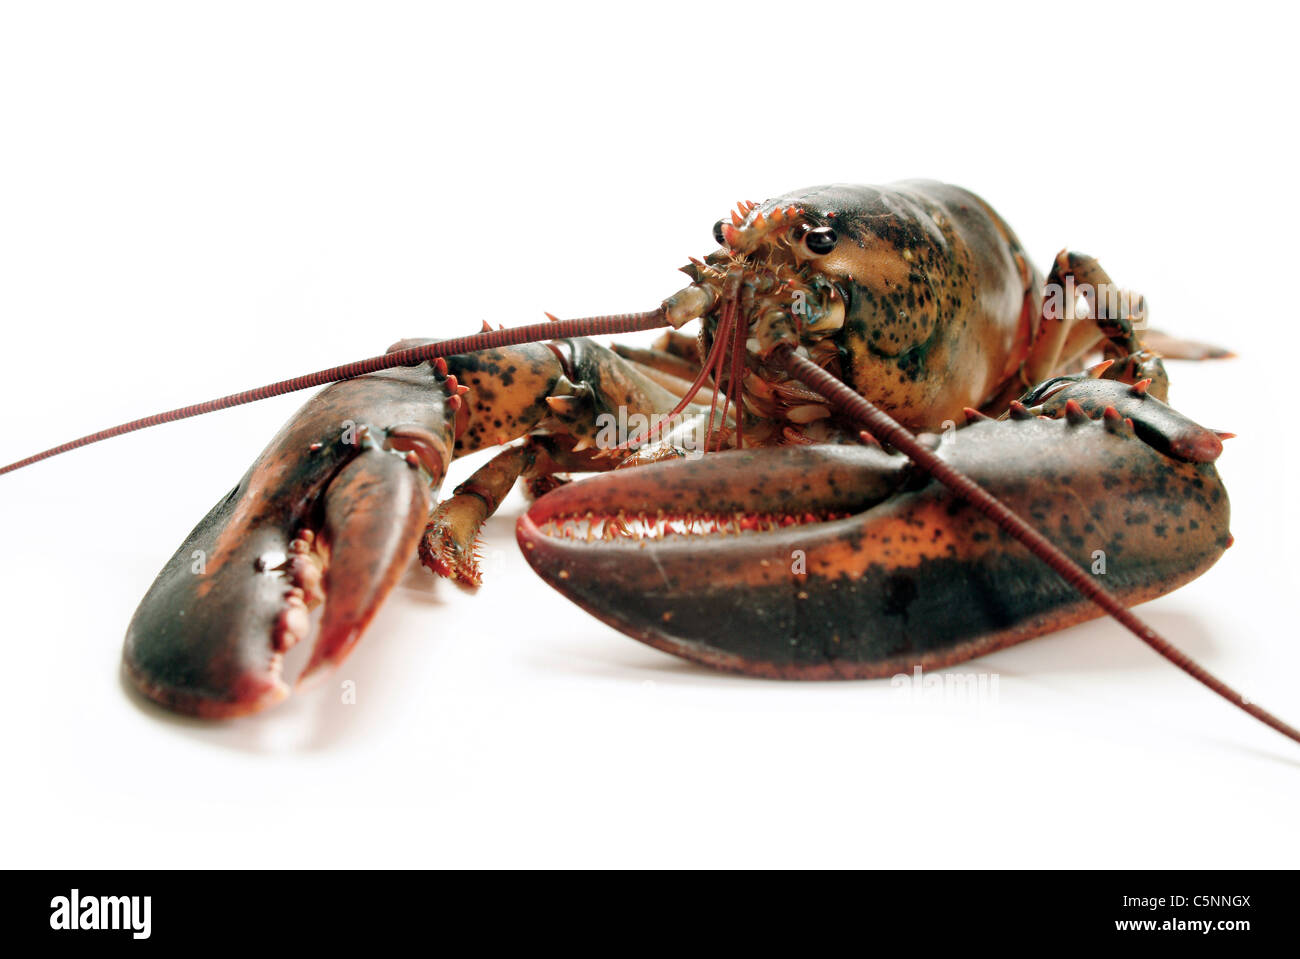 Le homard canadien, vivant Photo Stock